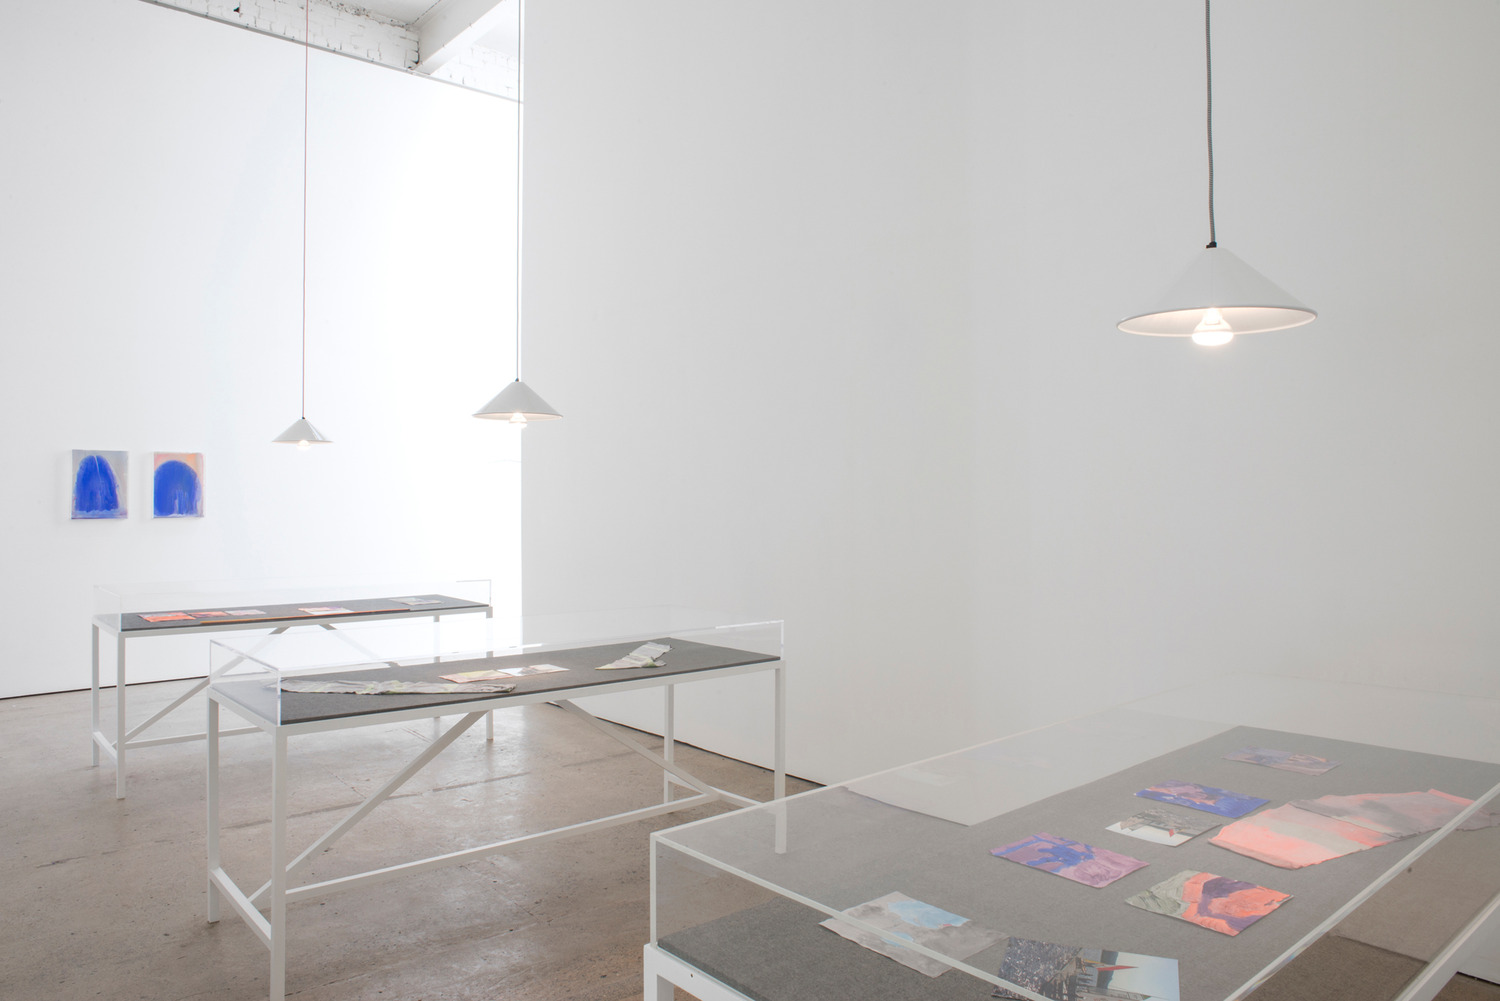 Installation view 'Electric Magnetic Installation', The Modern Institute, Aird's Lane, Glasgow, 2015